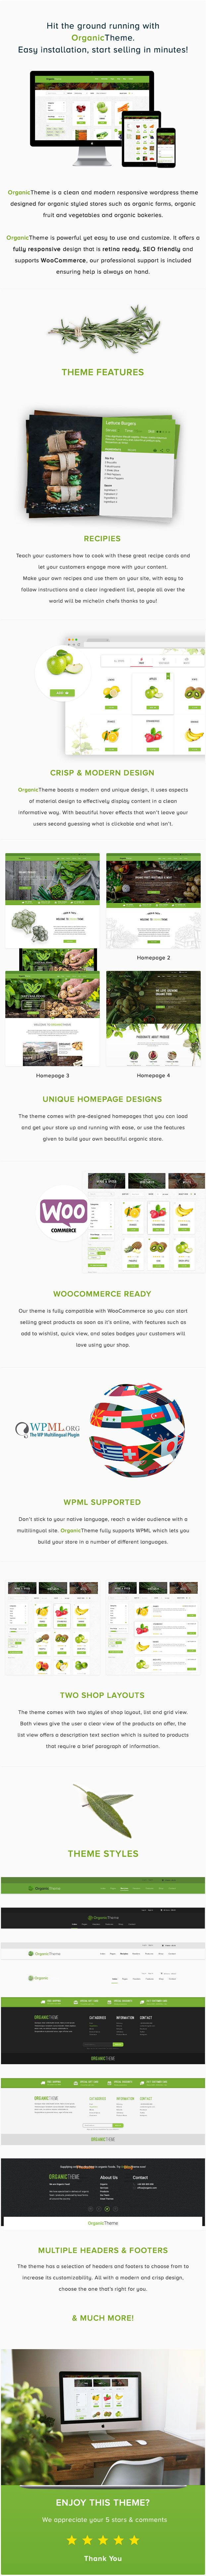 Organic theme is a clean modern responsive wordpresstheme for organic styled stores organic farms and foodstores.